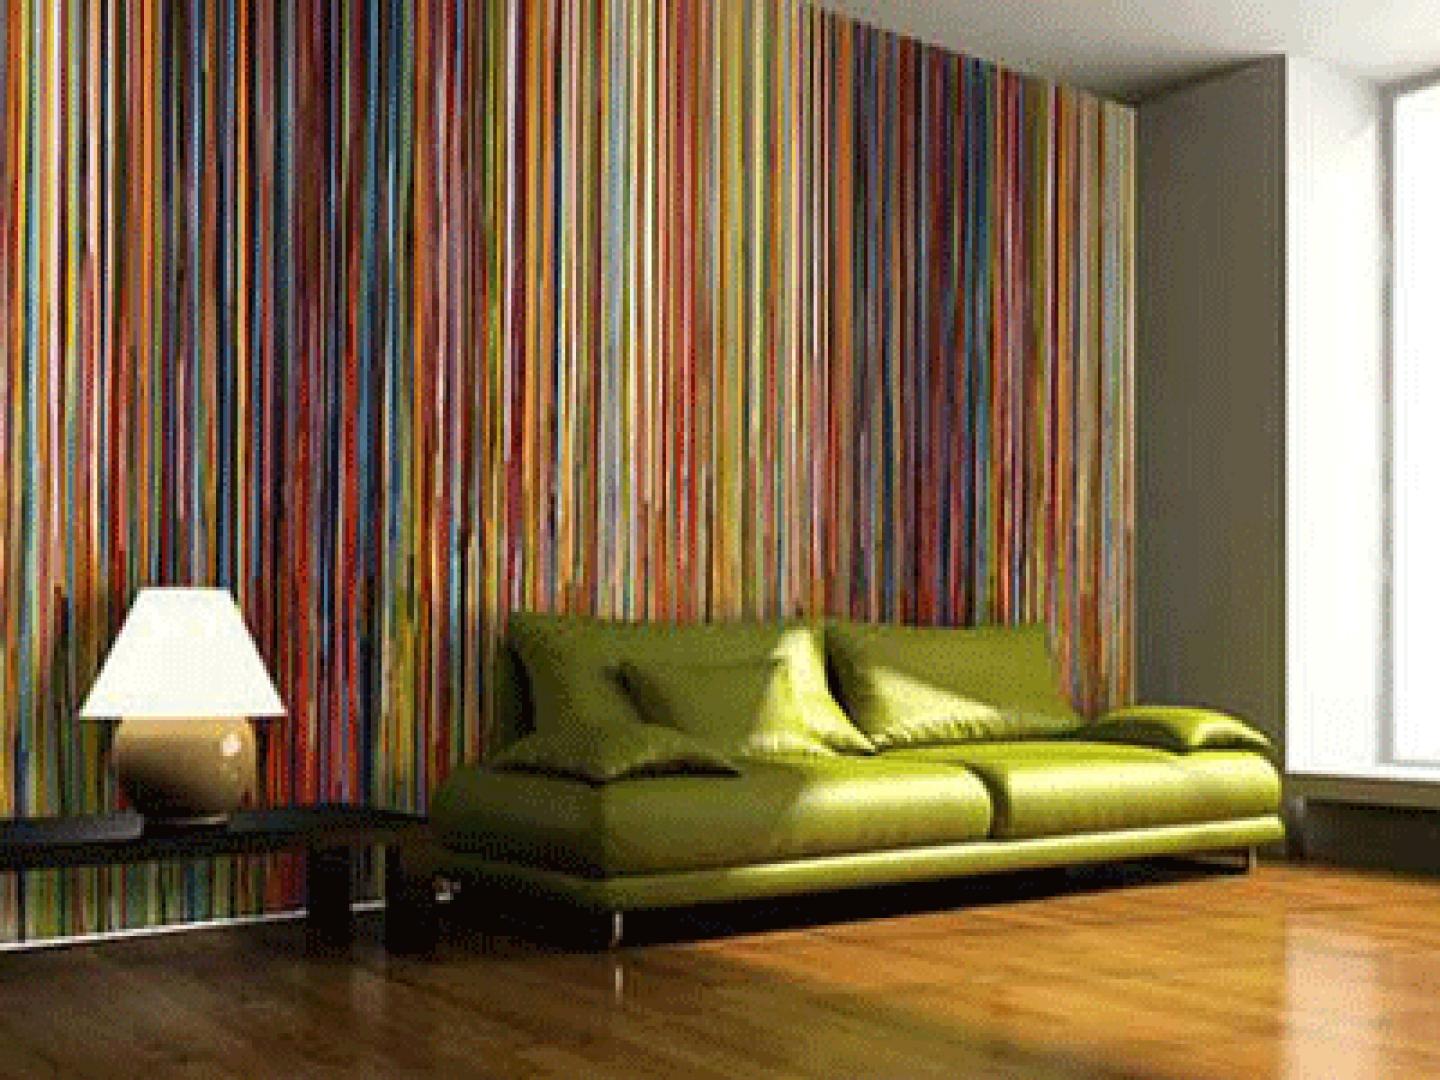 Wallpaper Room Decor photo - 8